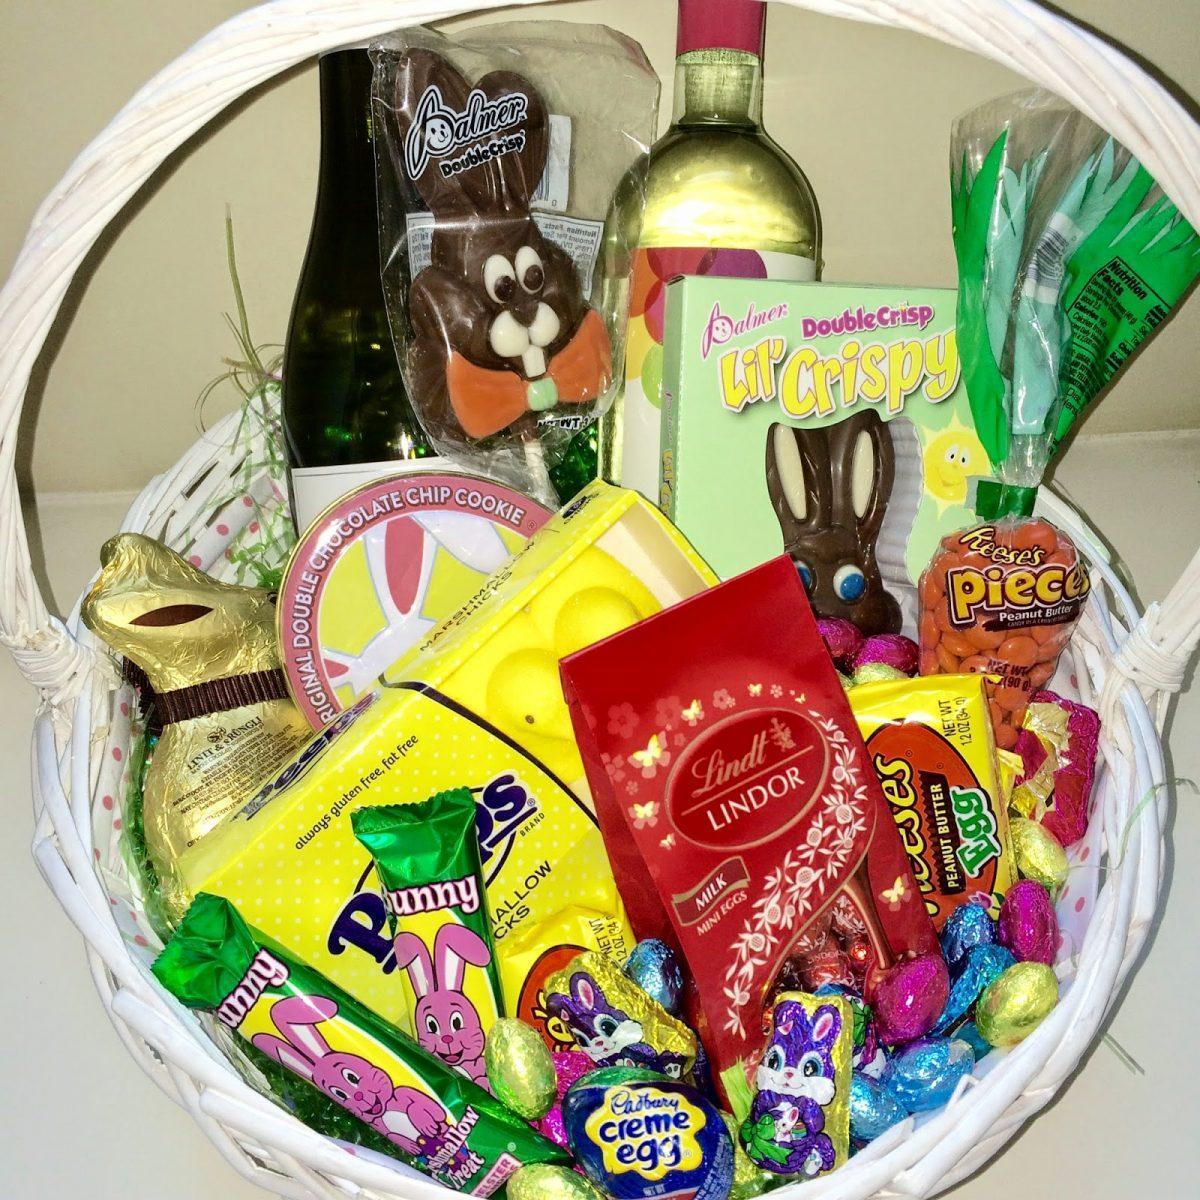 Adult easter baskets that are 18 carrot gold verbal gold blog my other host gift aeb go to is an edible arrangement or a nice potted plant yes i love flowers but i feel like a vase of potted tulips goes a negle Choice Image